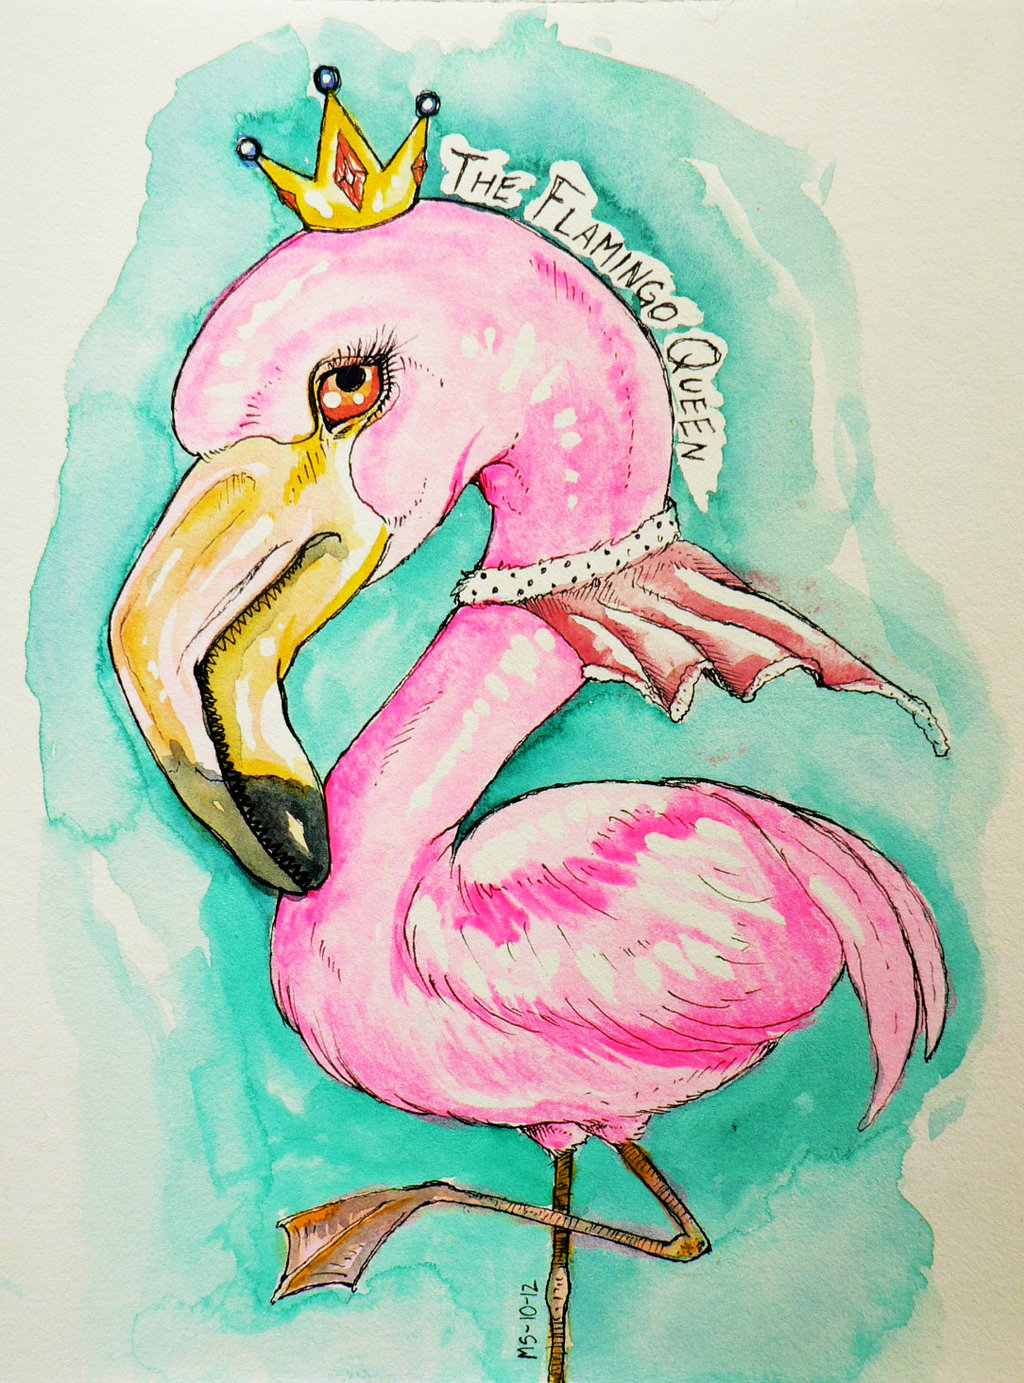 the_flamingo_queen_by_blackmagdalena-d5itz93